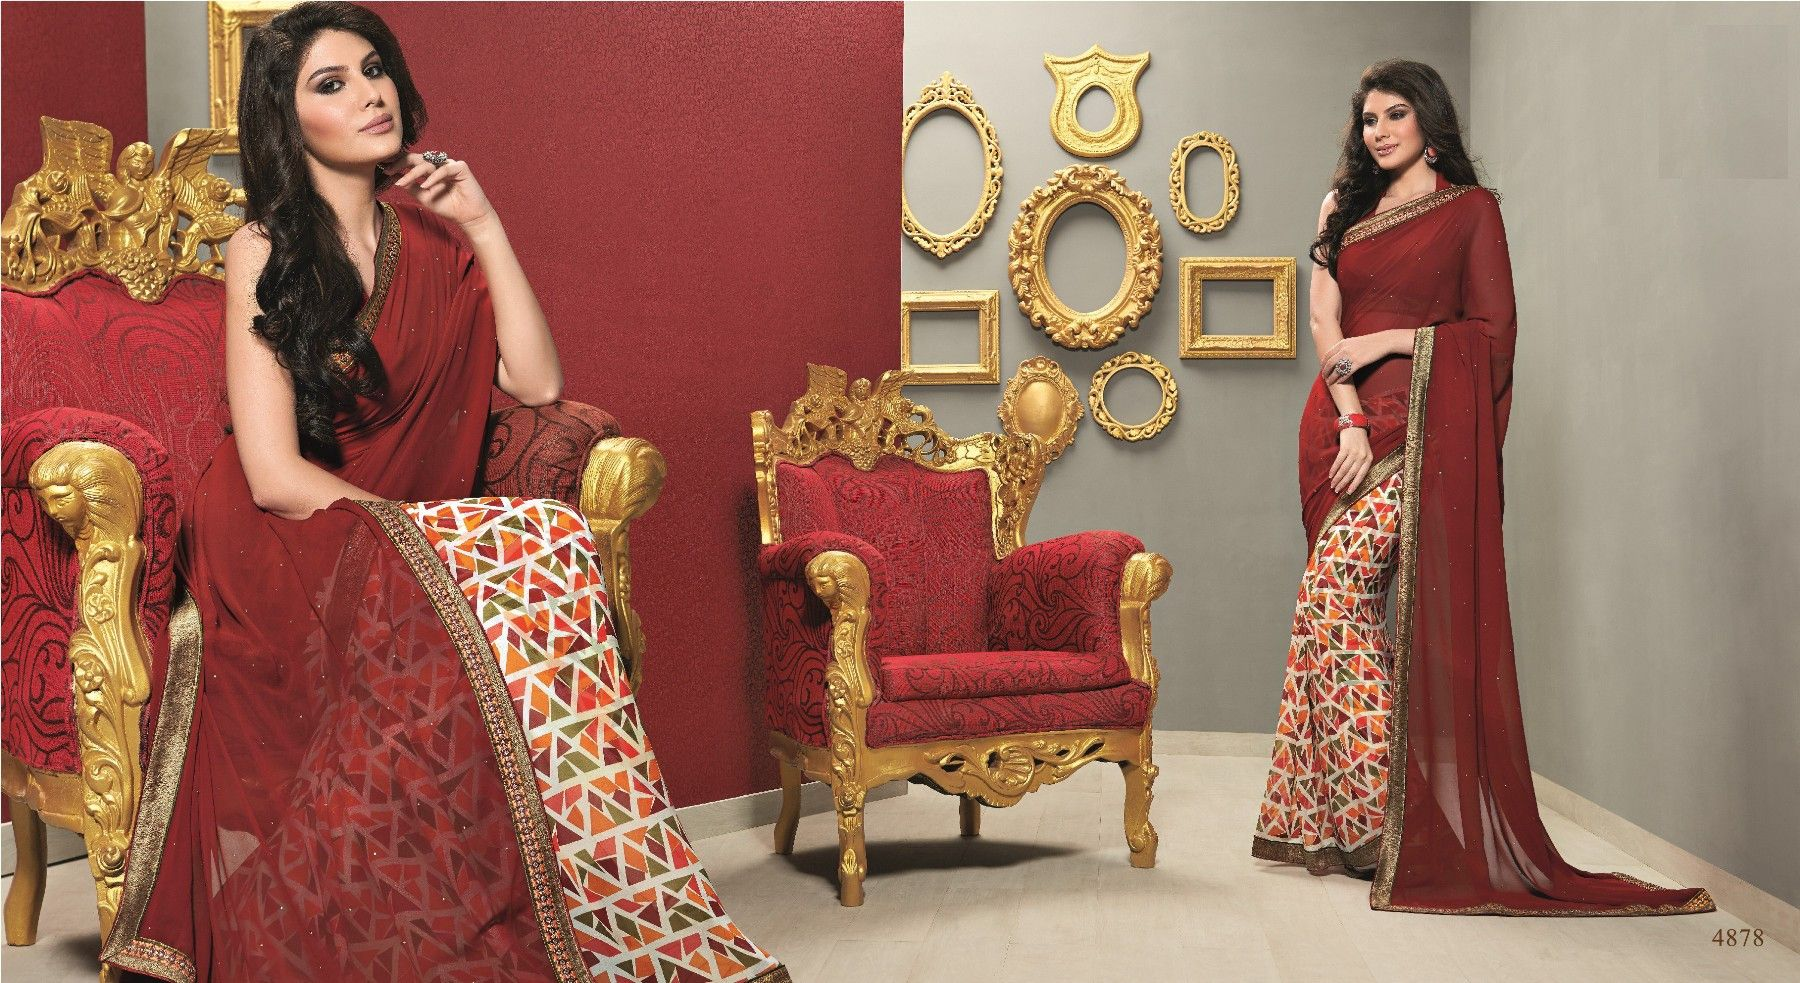 Picturesque Traditional Saree with Amazing Prints and Exquisite Colors